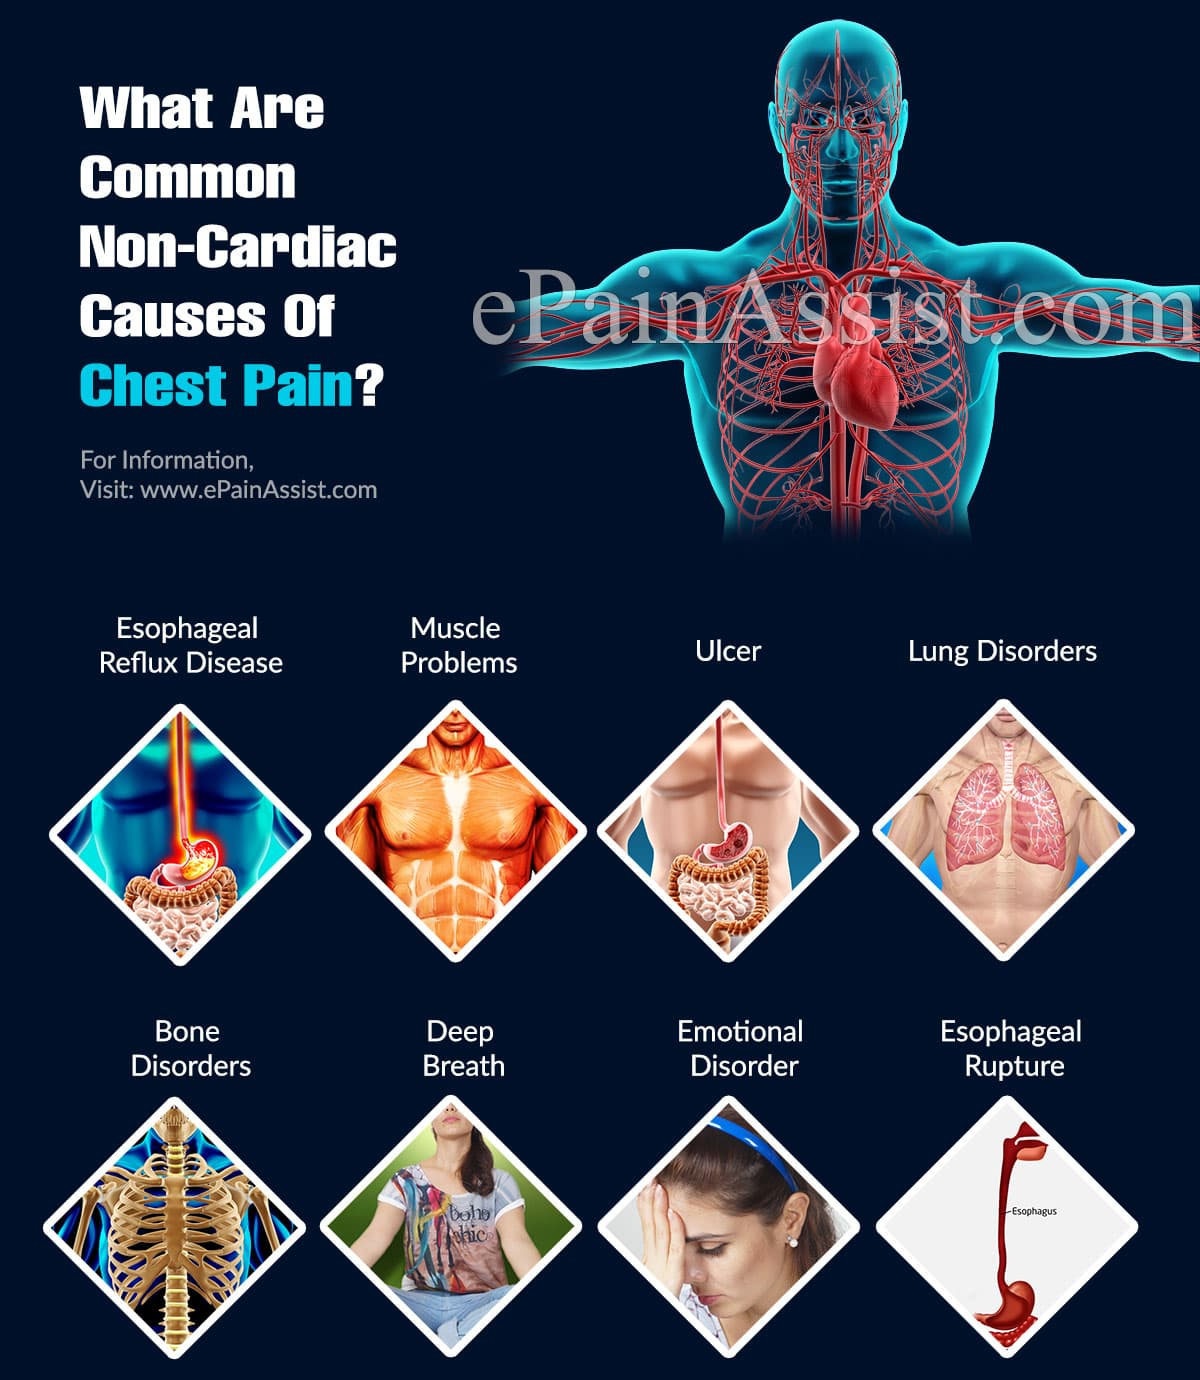 What Are Common Non-Cardiac Causes Of Chest Pain?